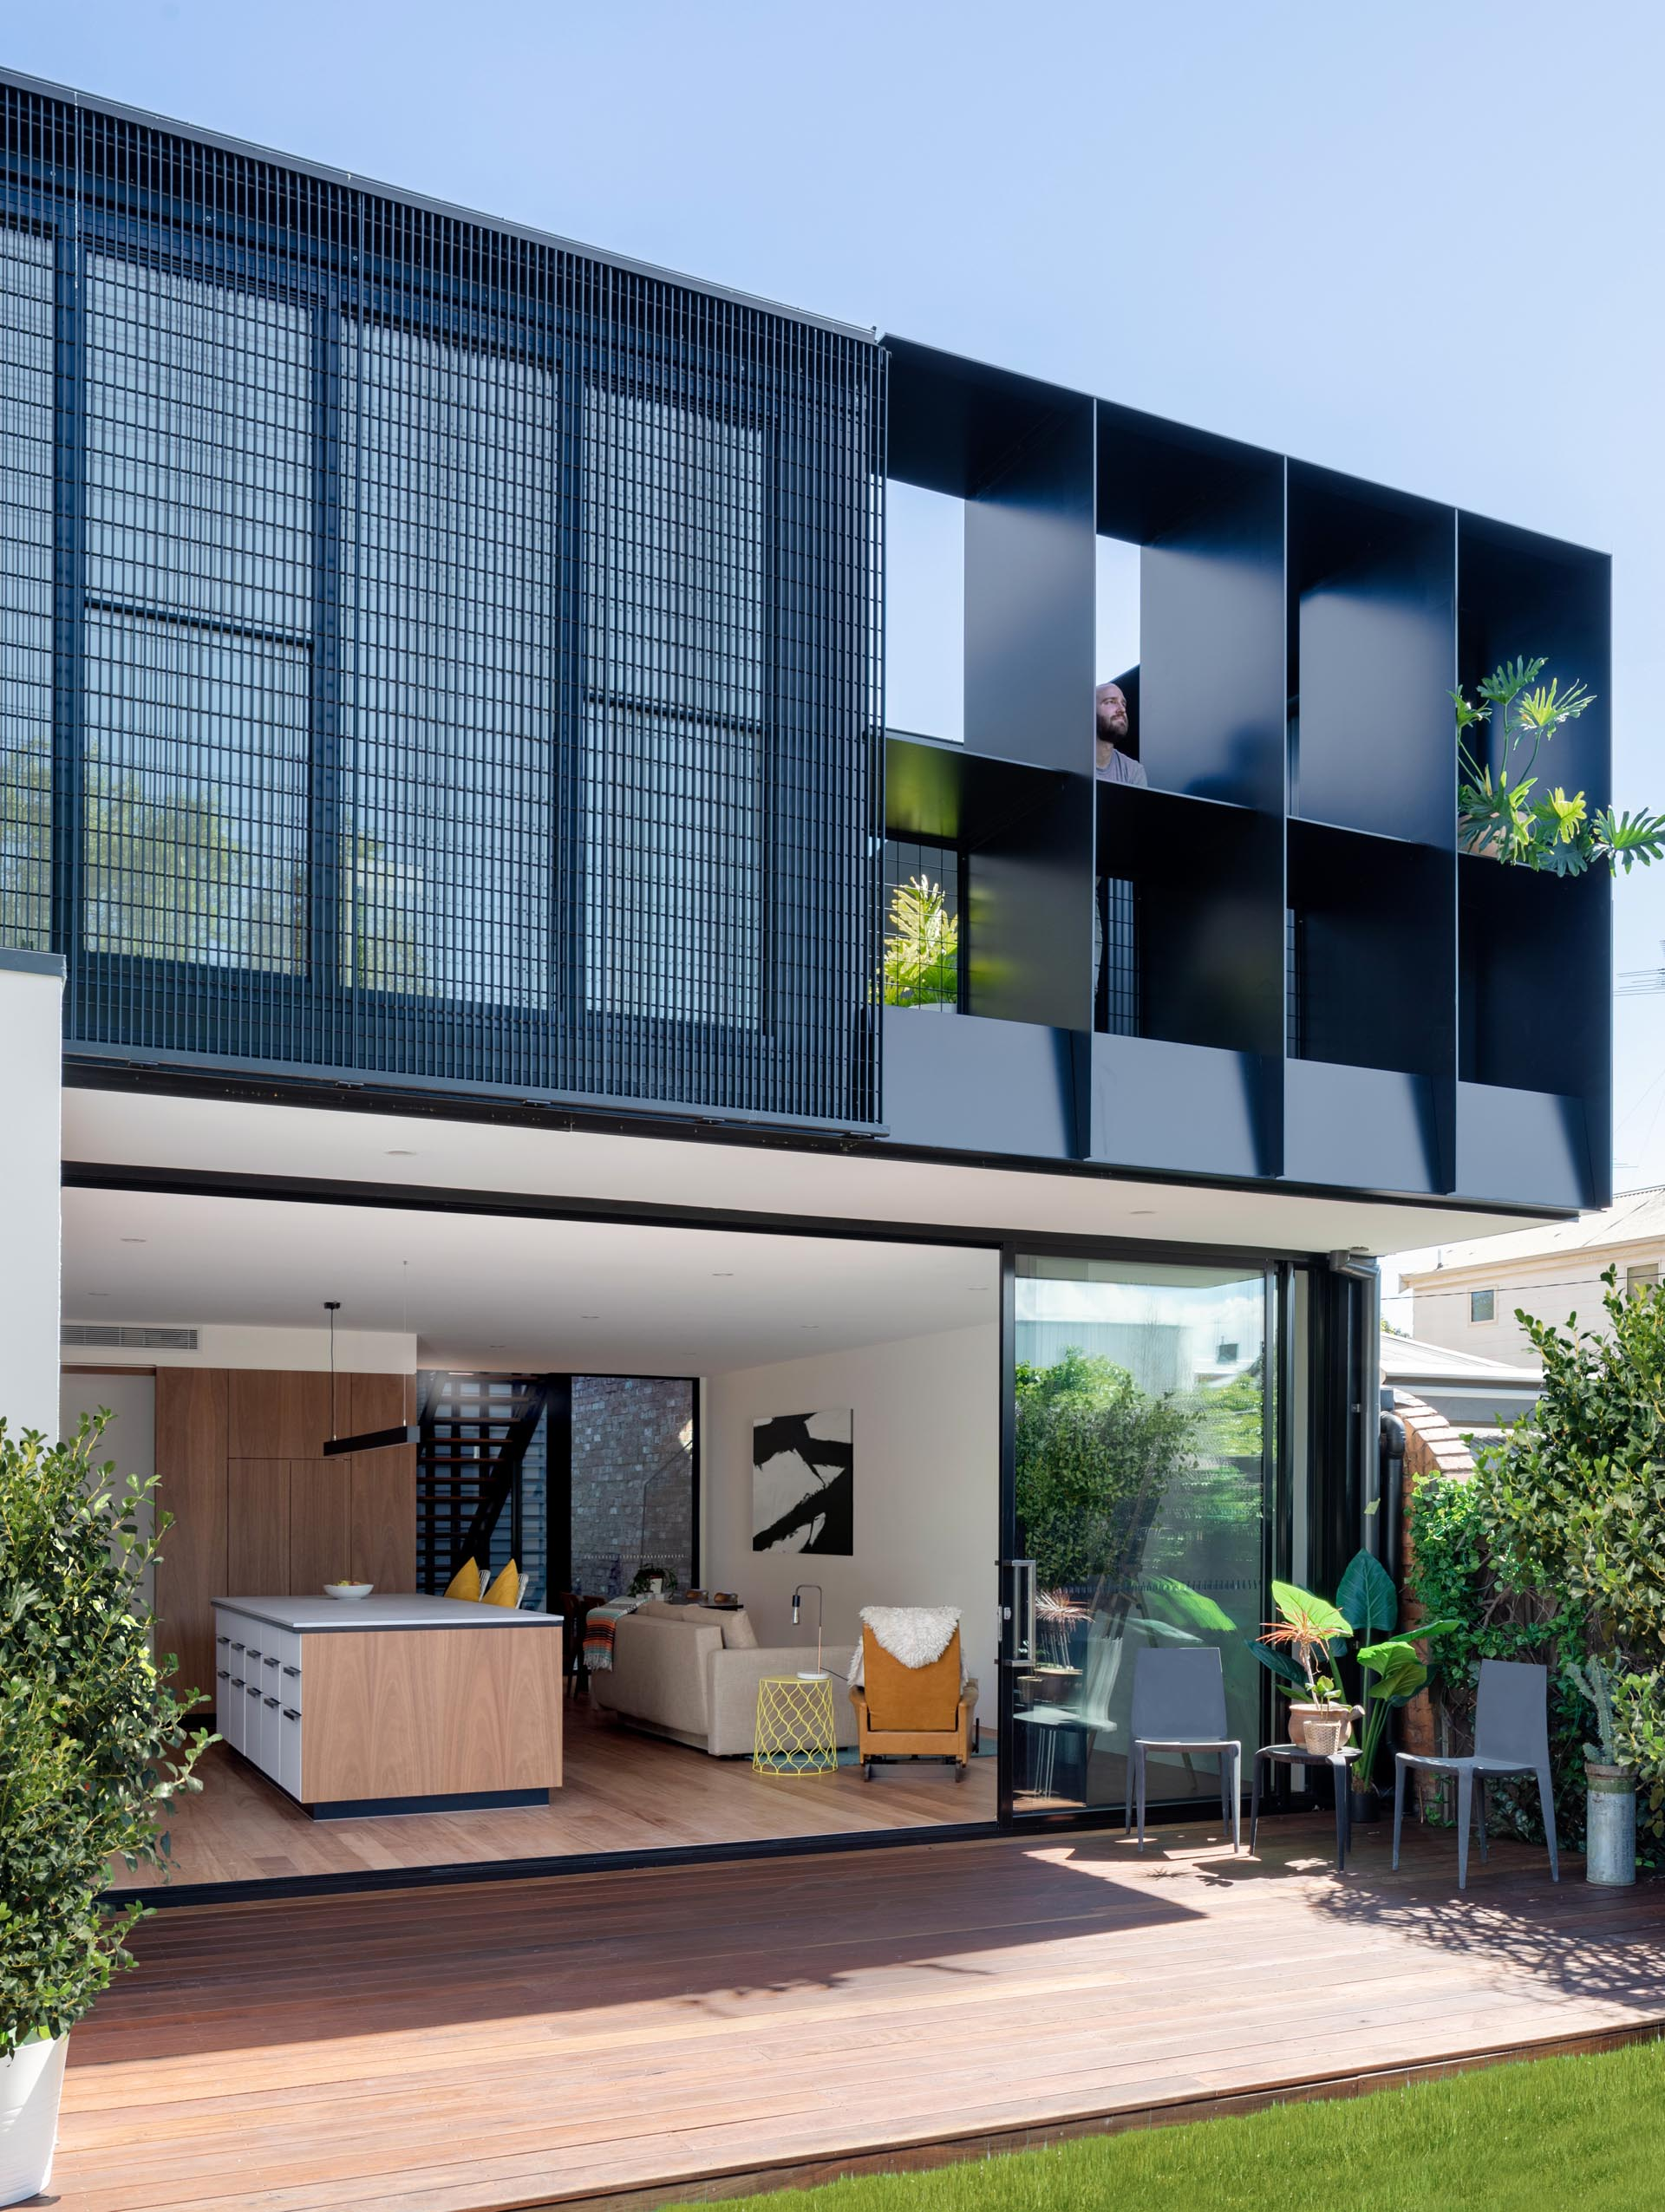 A modern house extension with a sliding glass wall that opens to the backyard, which provides a view of the rear dark gray corrugated metal extension.